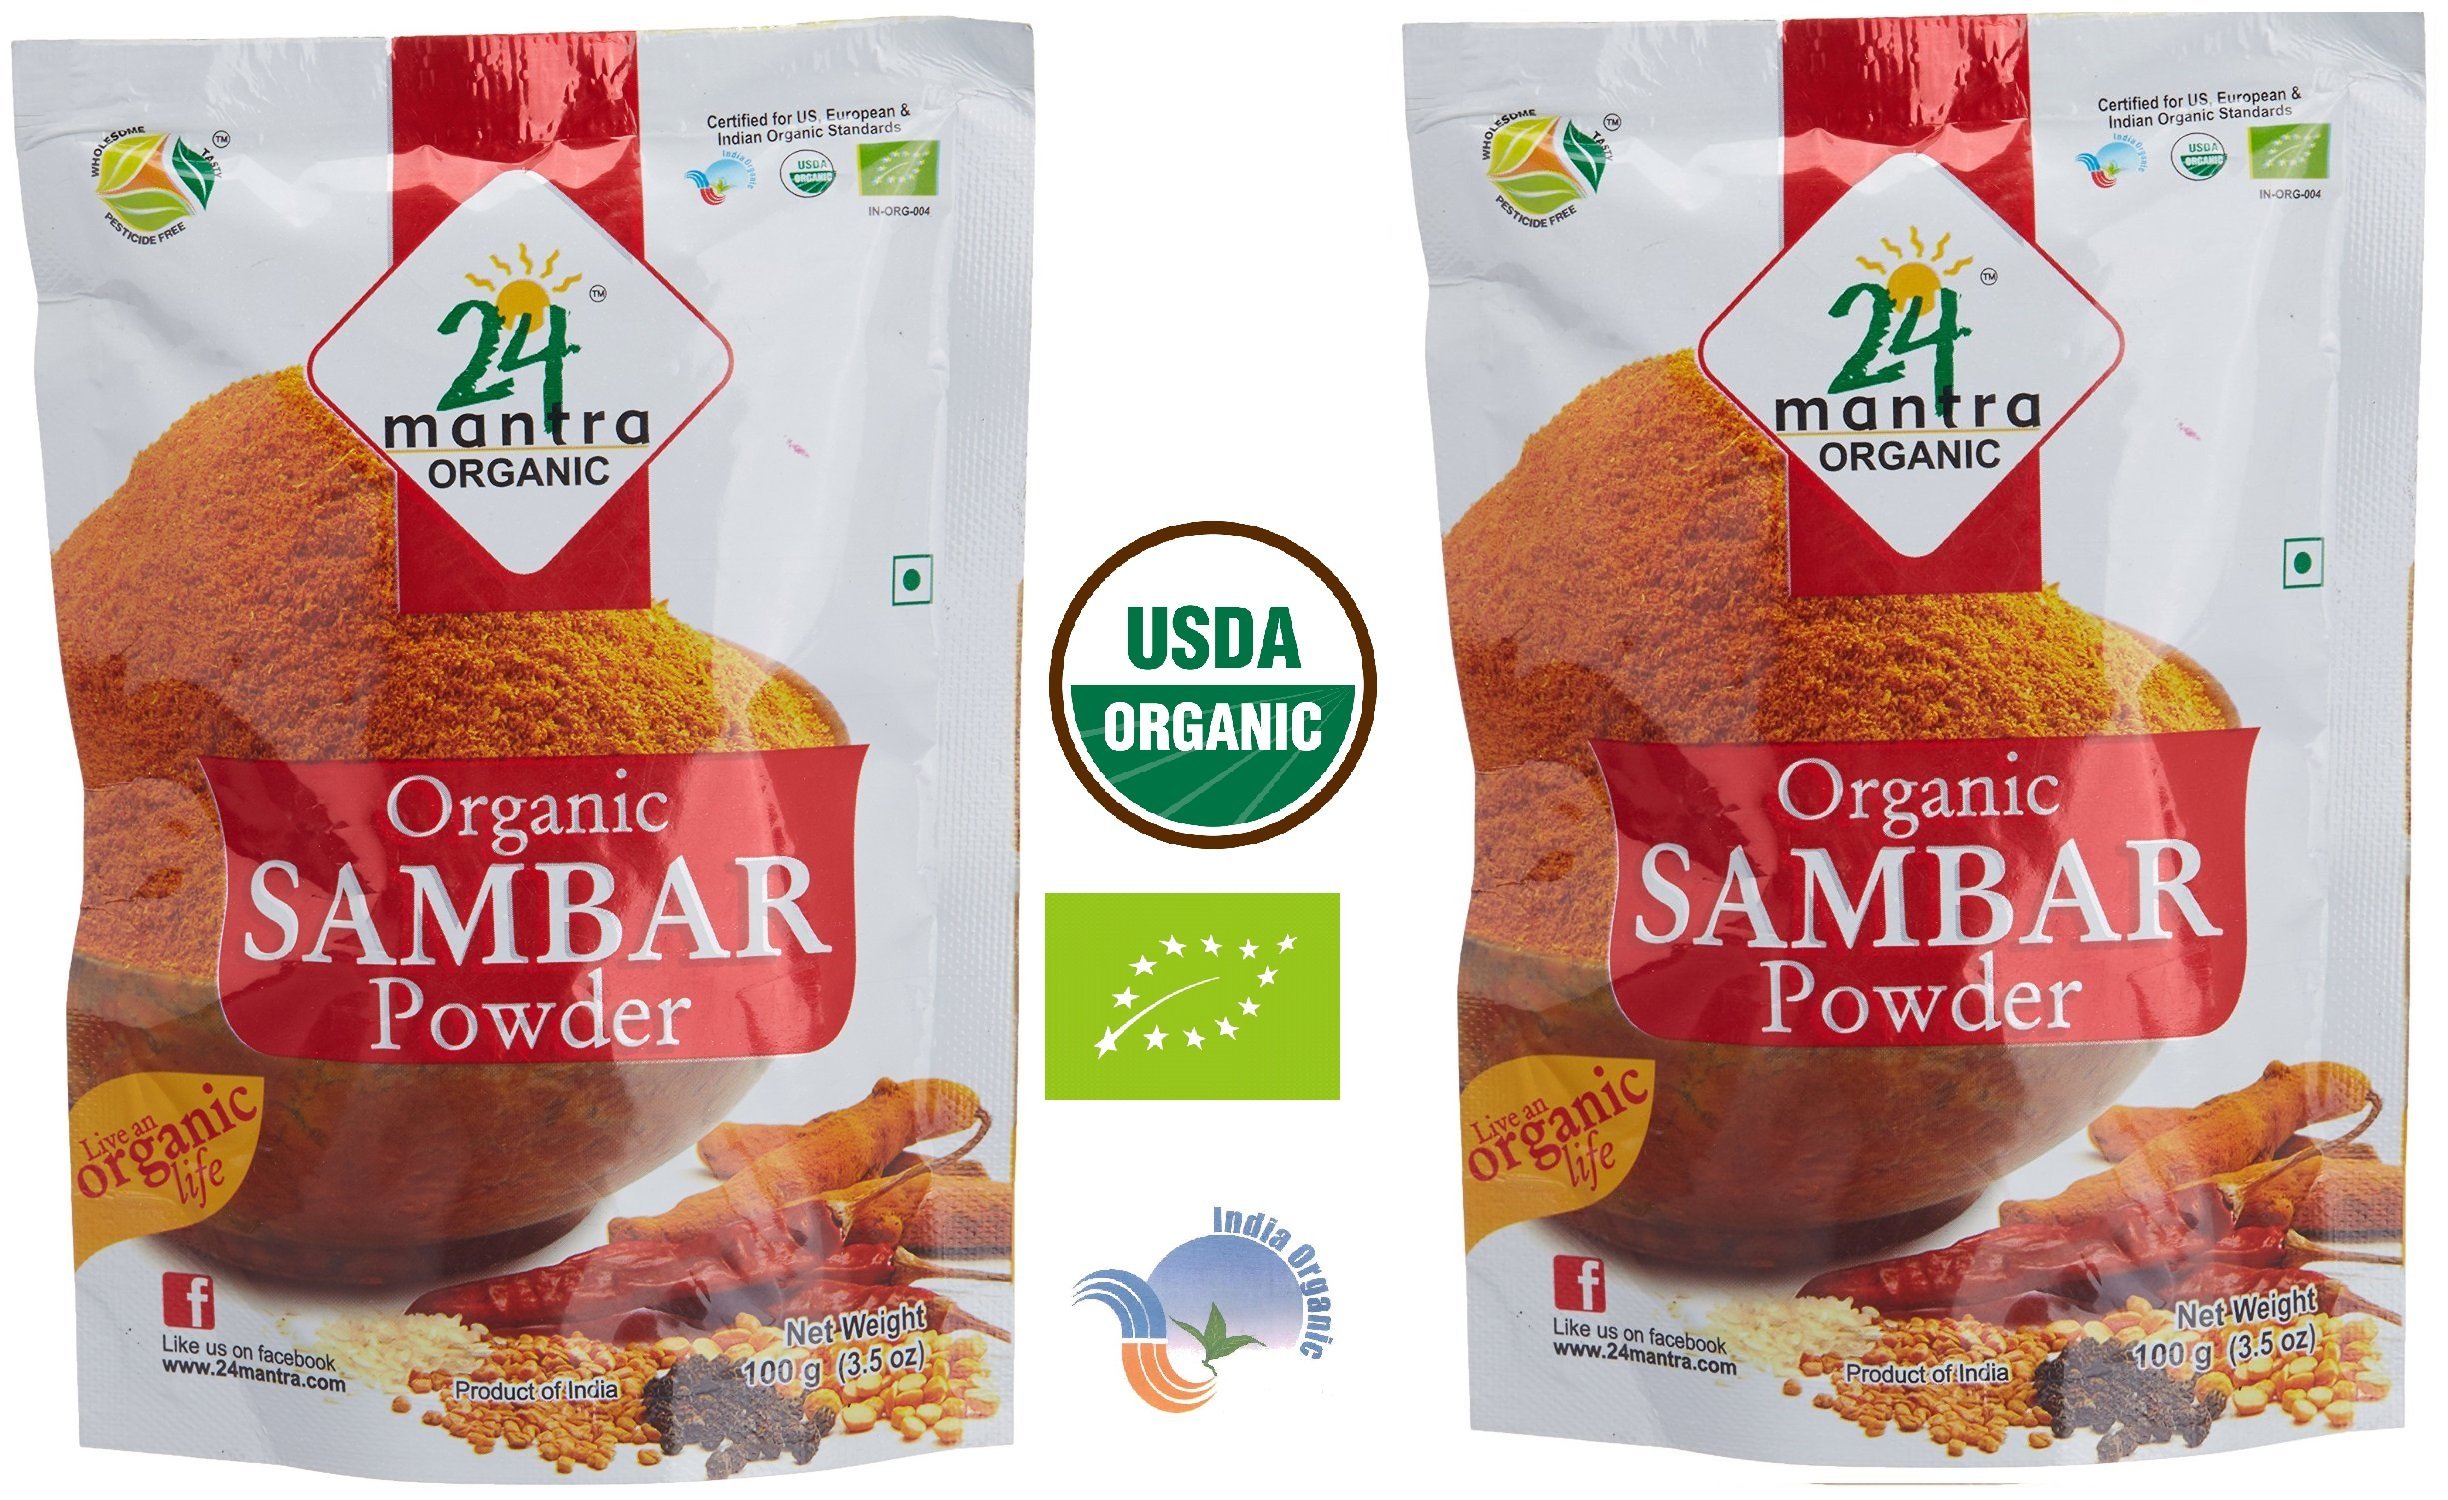 Organic Sambar Powder - ★ USDA Certified Organic - ★ European Union Certified Organic - ★ Pesticides Free - ★ Adulteration Free - ★ Sodium Free - Pack of 2 X 3.5 Ounces (7 Ounces) - 24 Mantra Organic